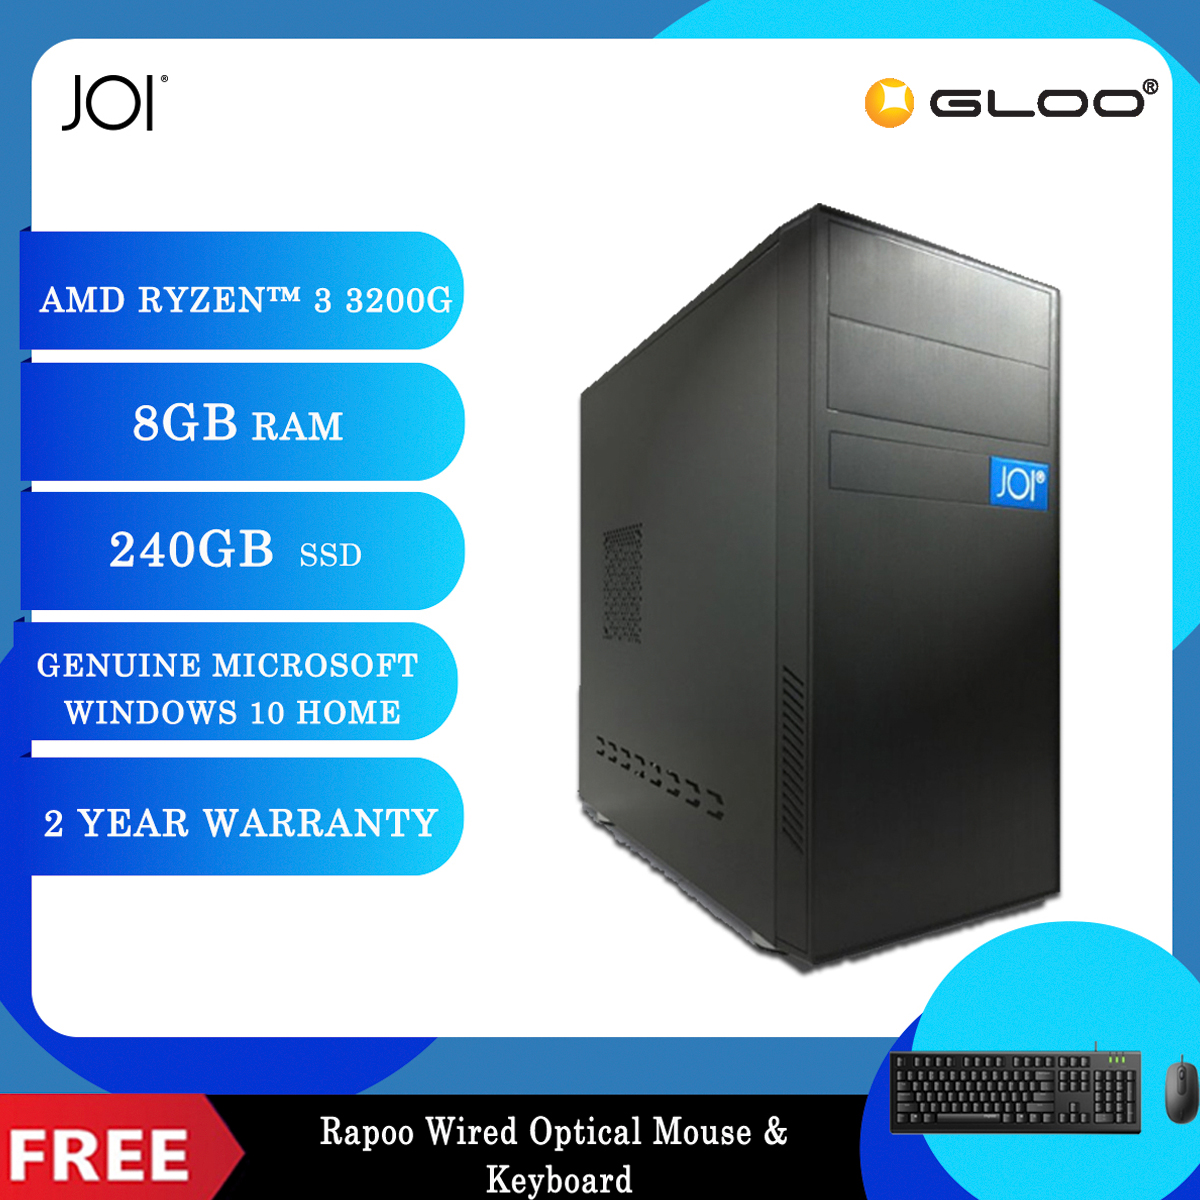 JOI PC A1032 (Ryzen 3 3200G/8G/240GB SSD/W10H) Free Combo Wired Keyboard+Mouse